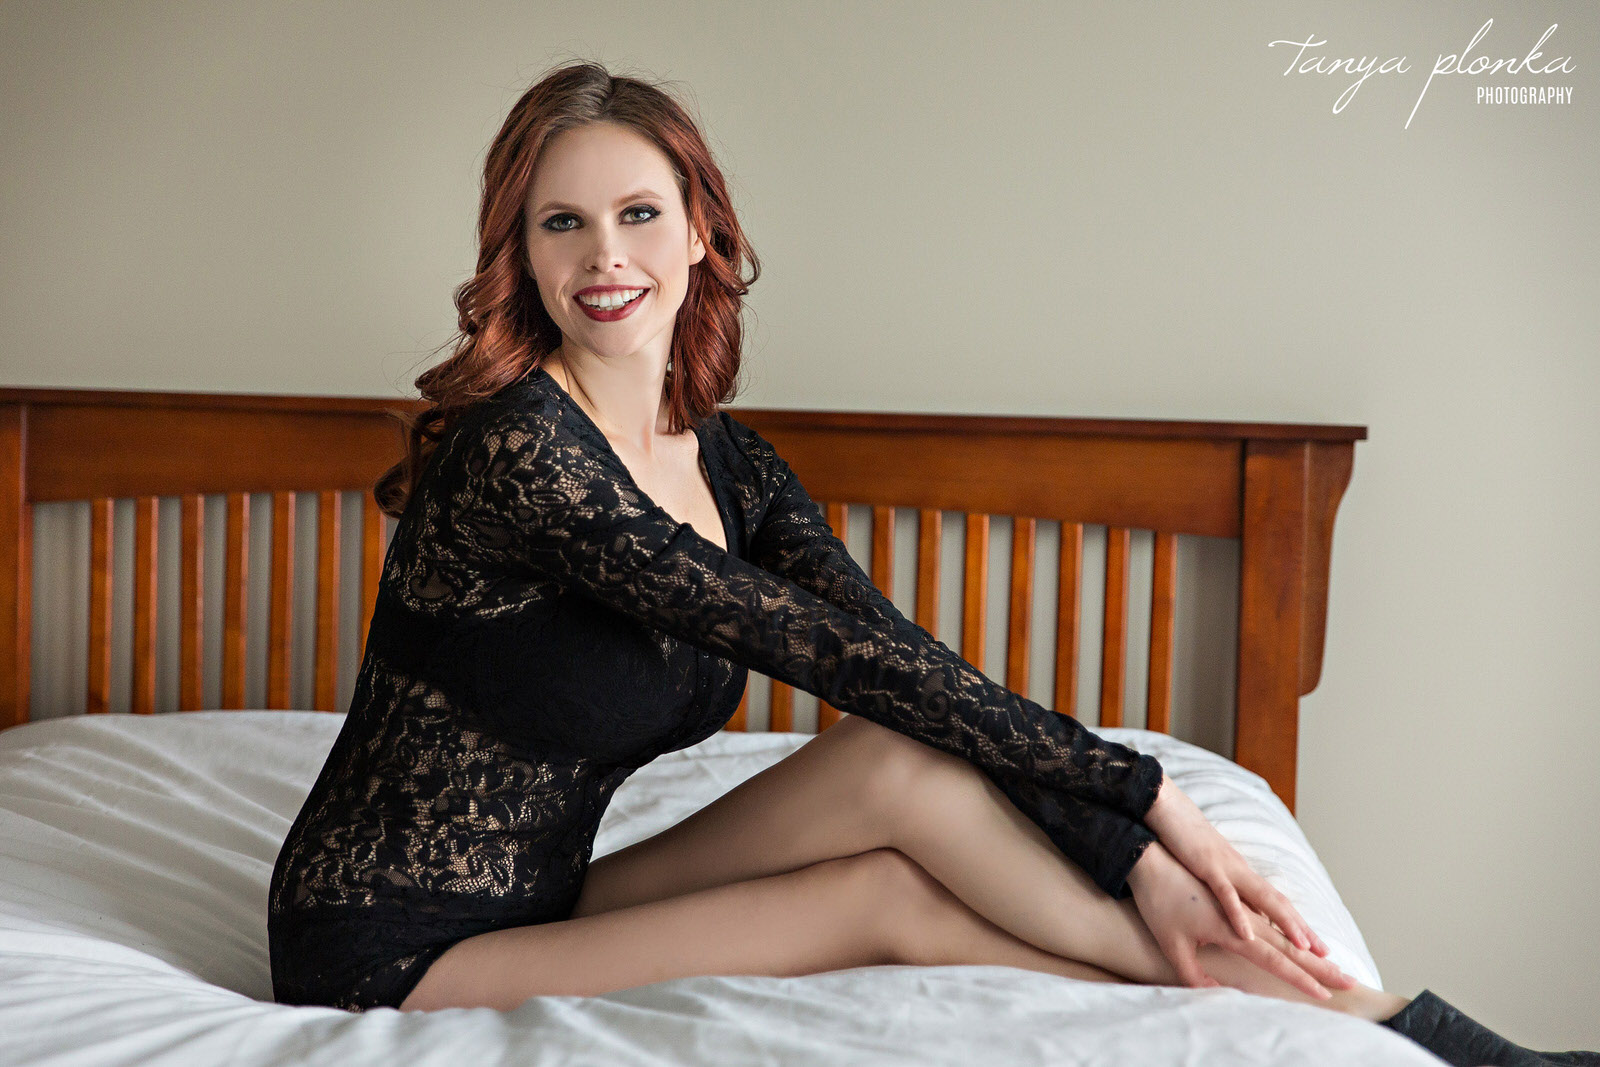 woman in black lace body suit sits on bed